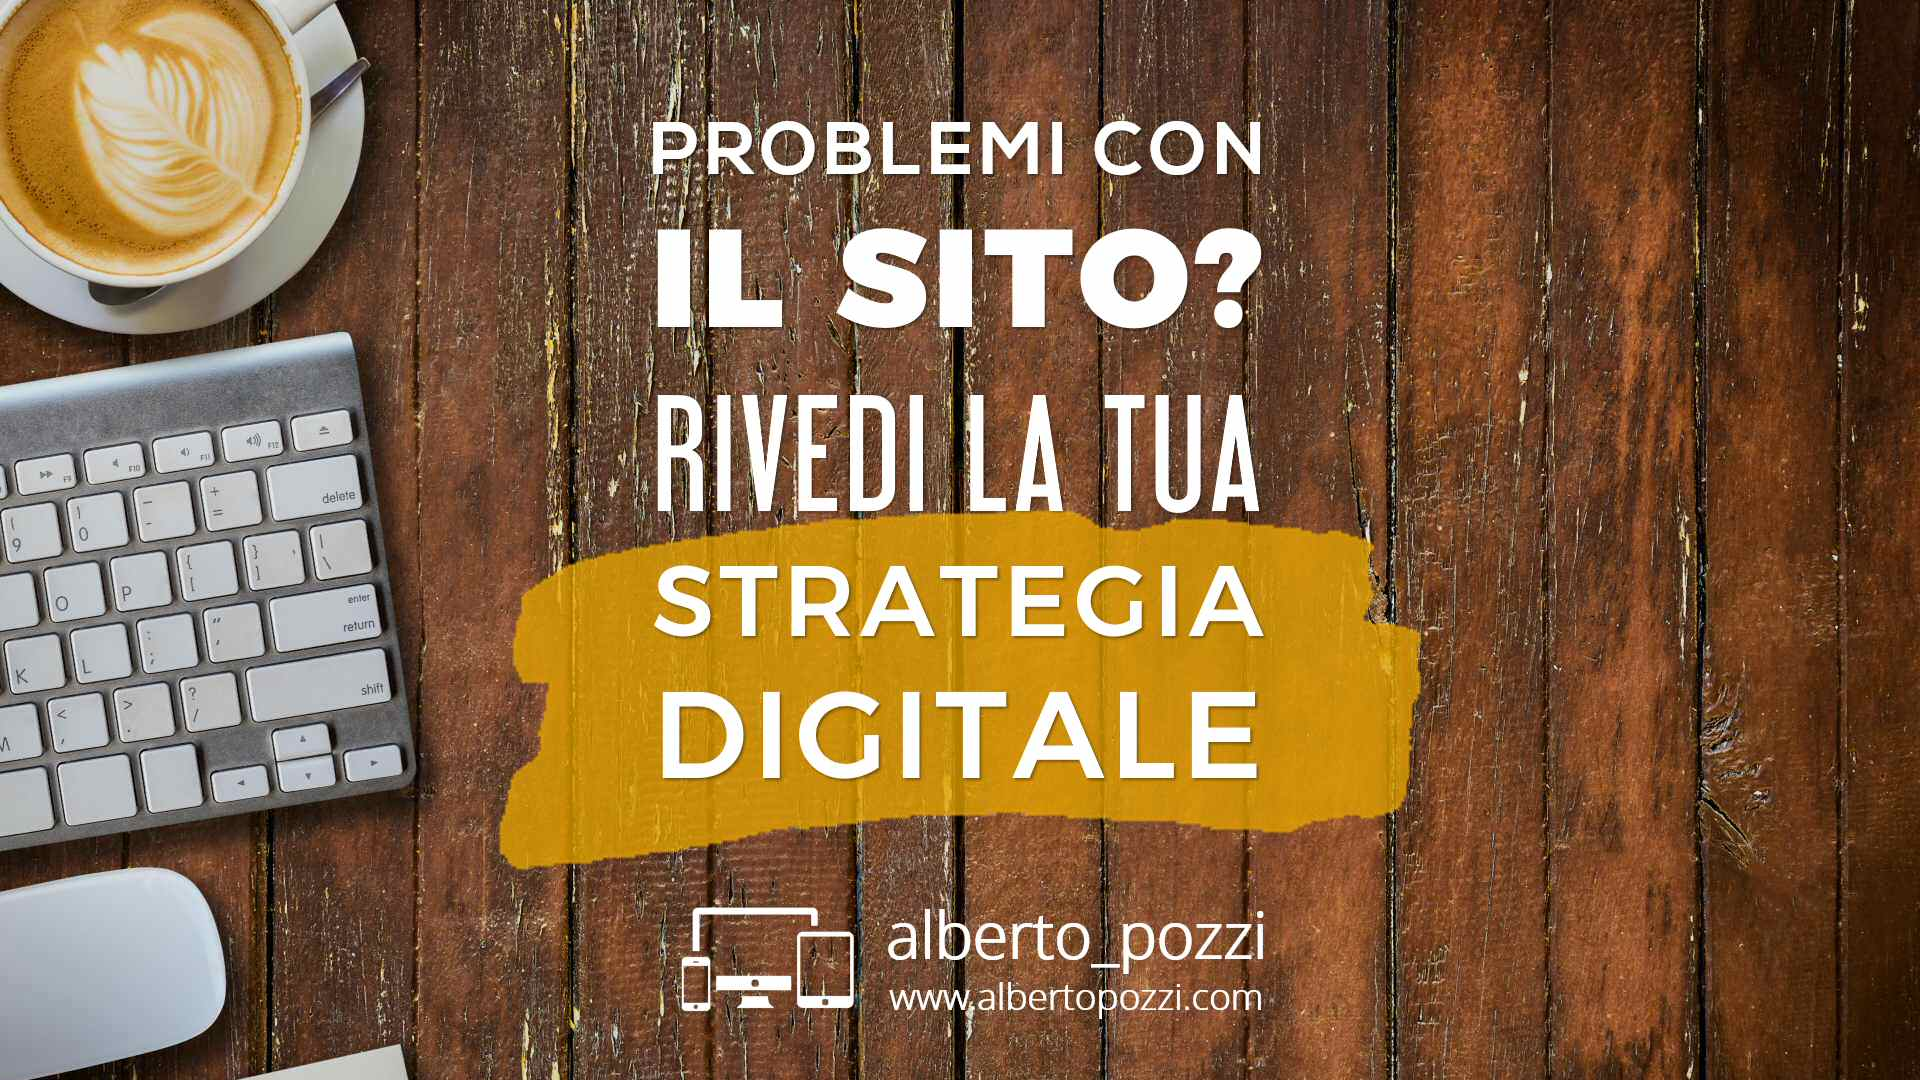 Problemi con il sito web? Rivedi la tua strategia digitale